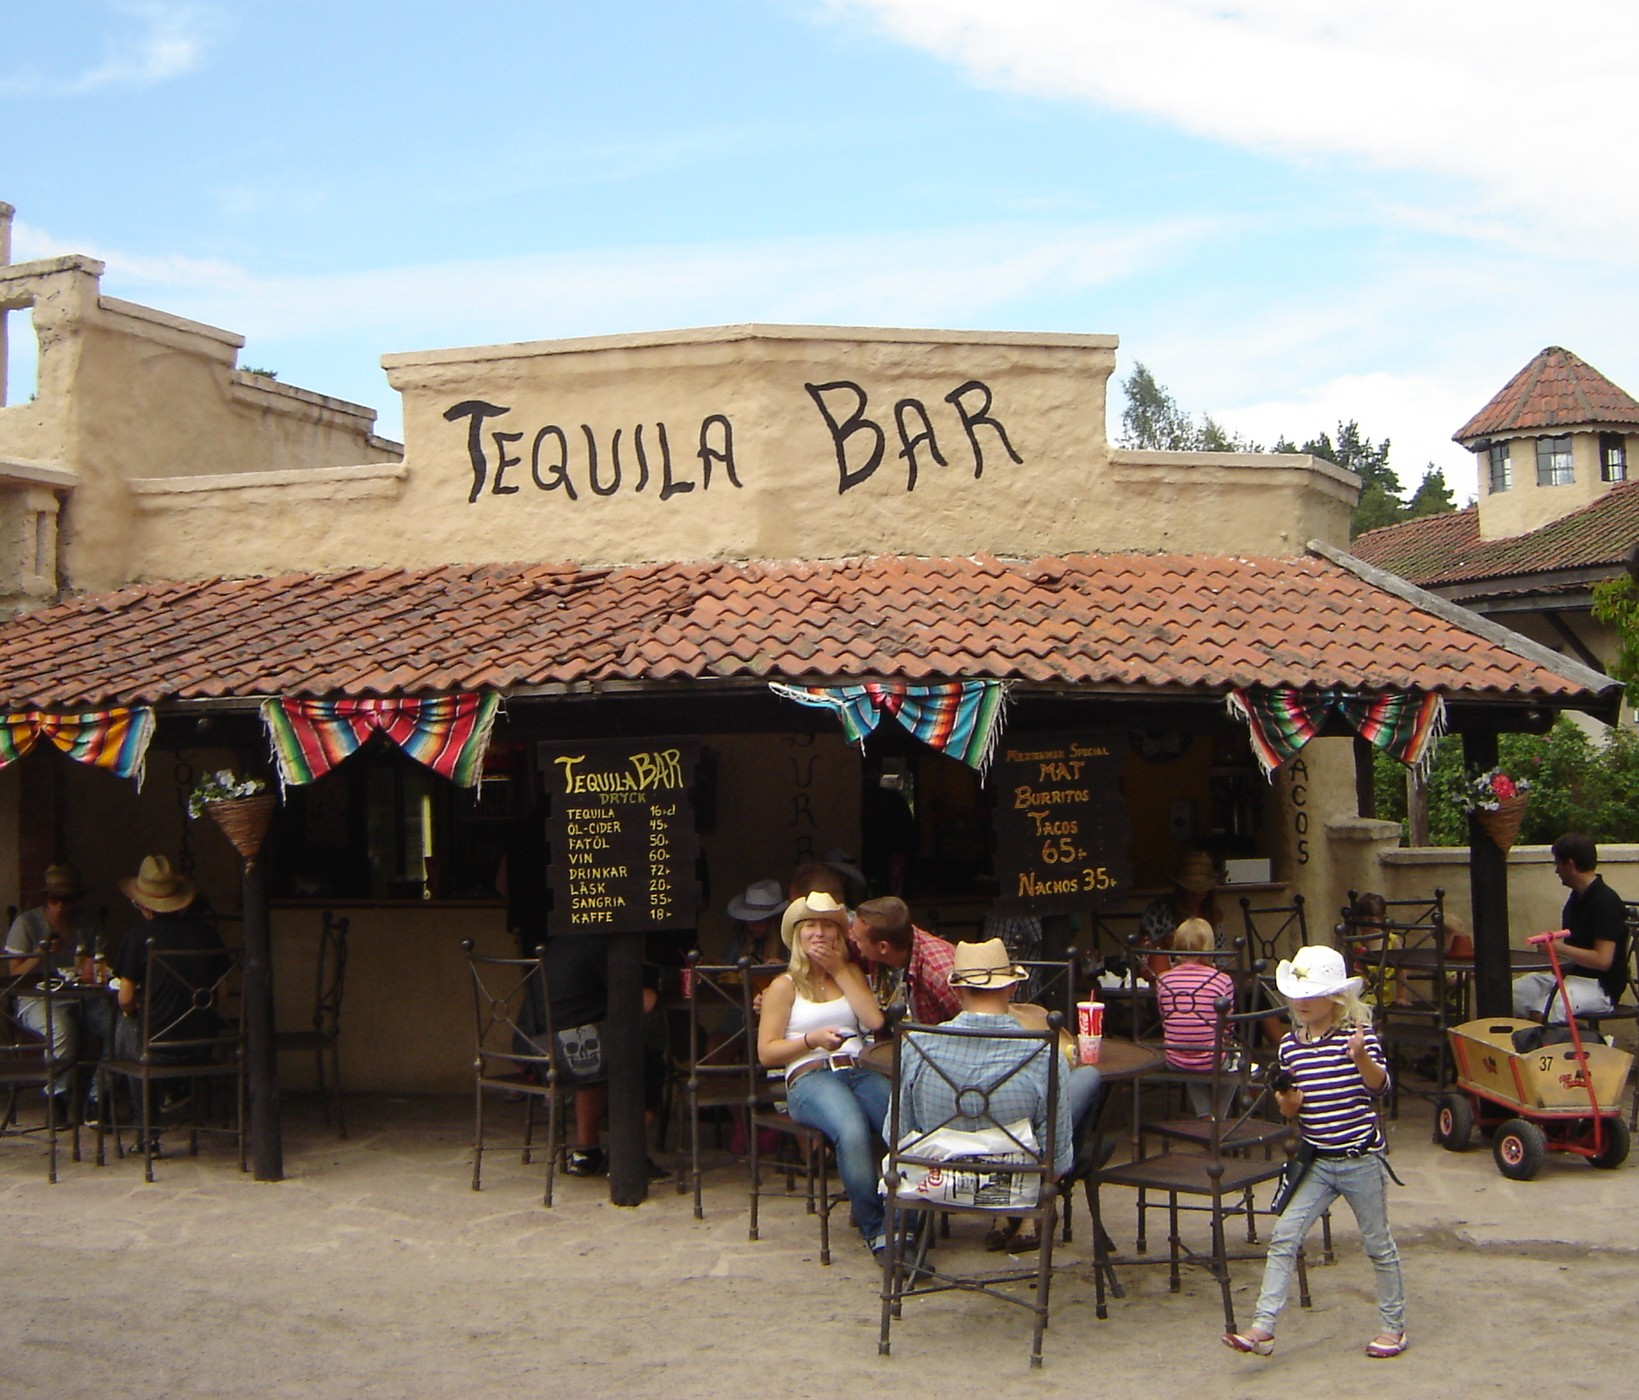 tequila bar high chaparral big bengt mexico